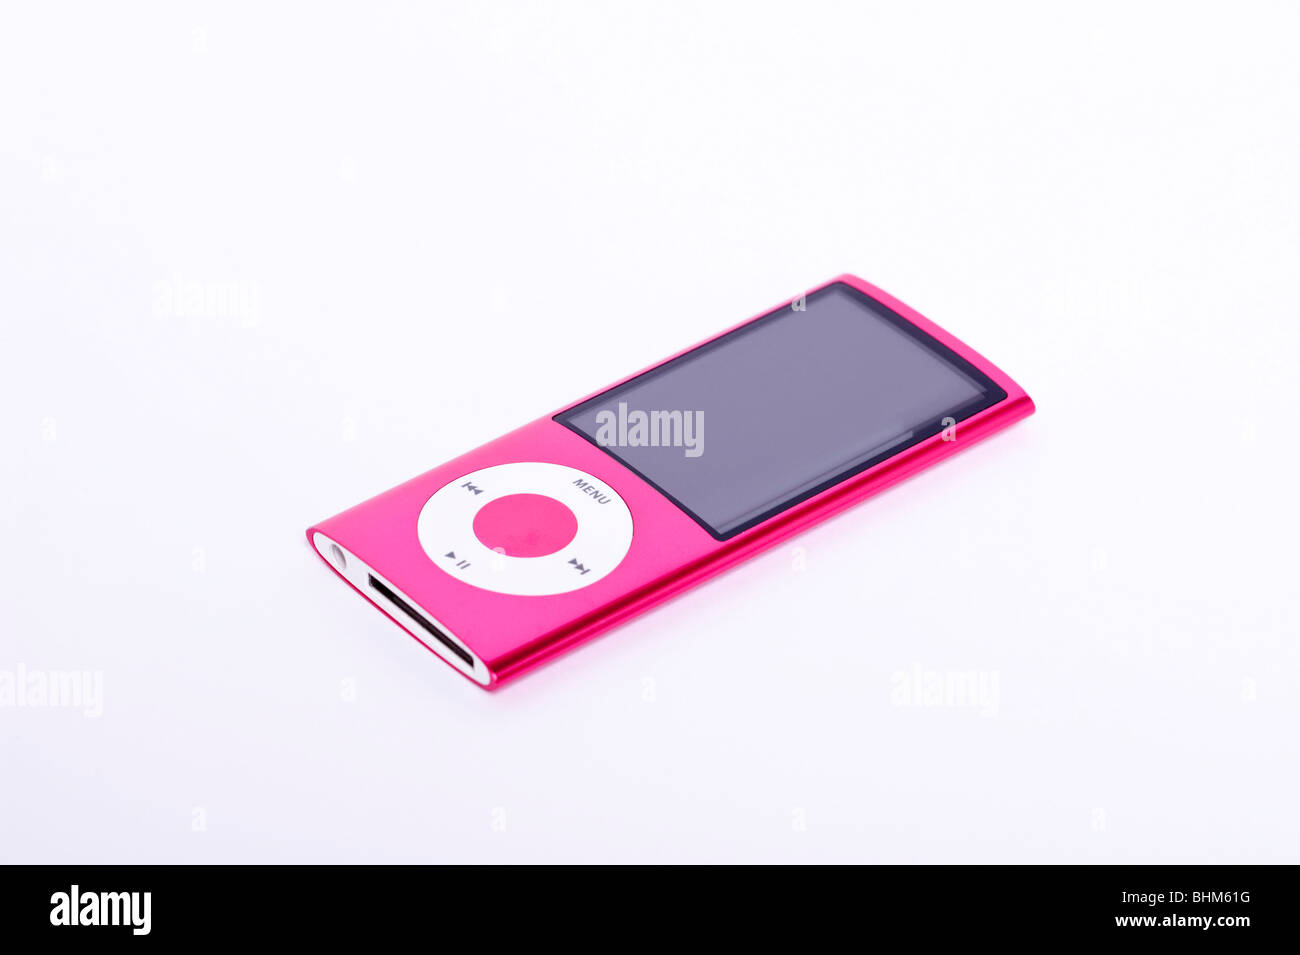 An Ipod Nano 5th generation digital music player with video camera on a white background - Stock Image